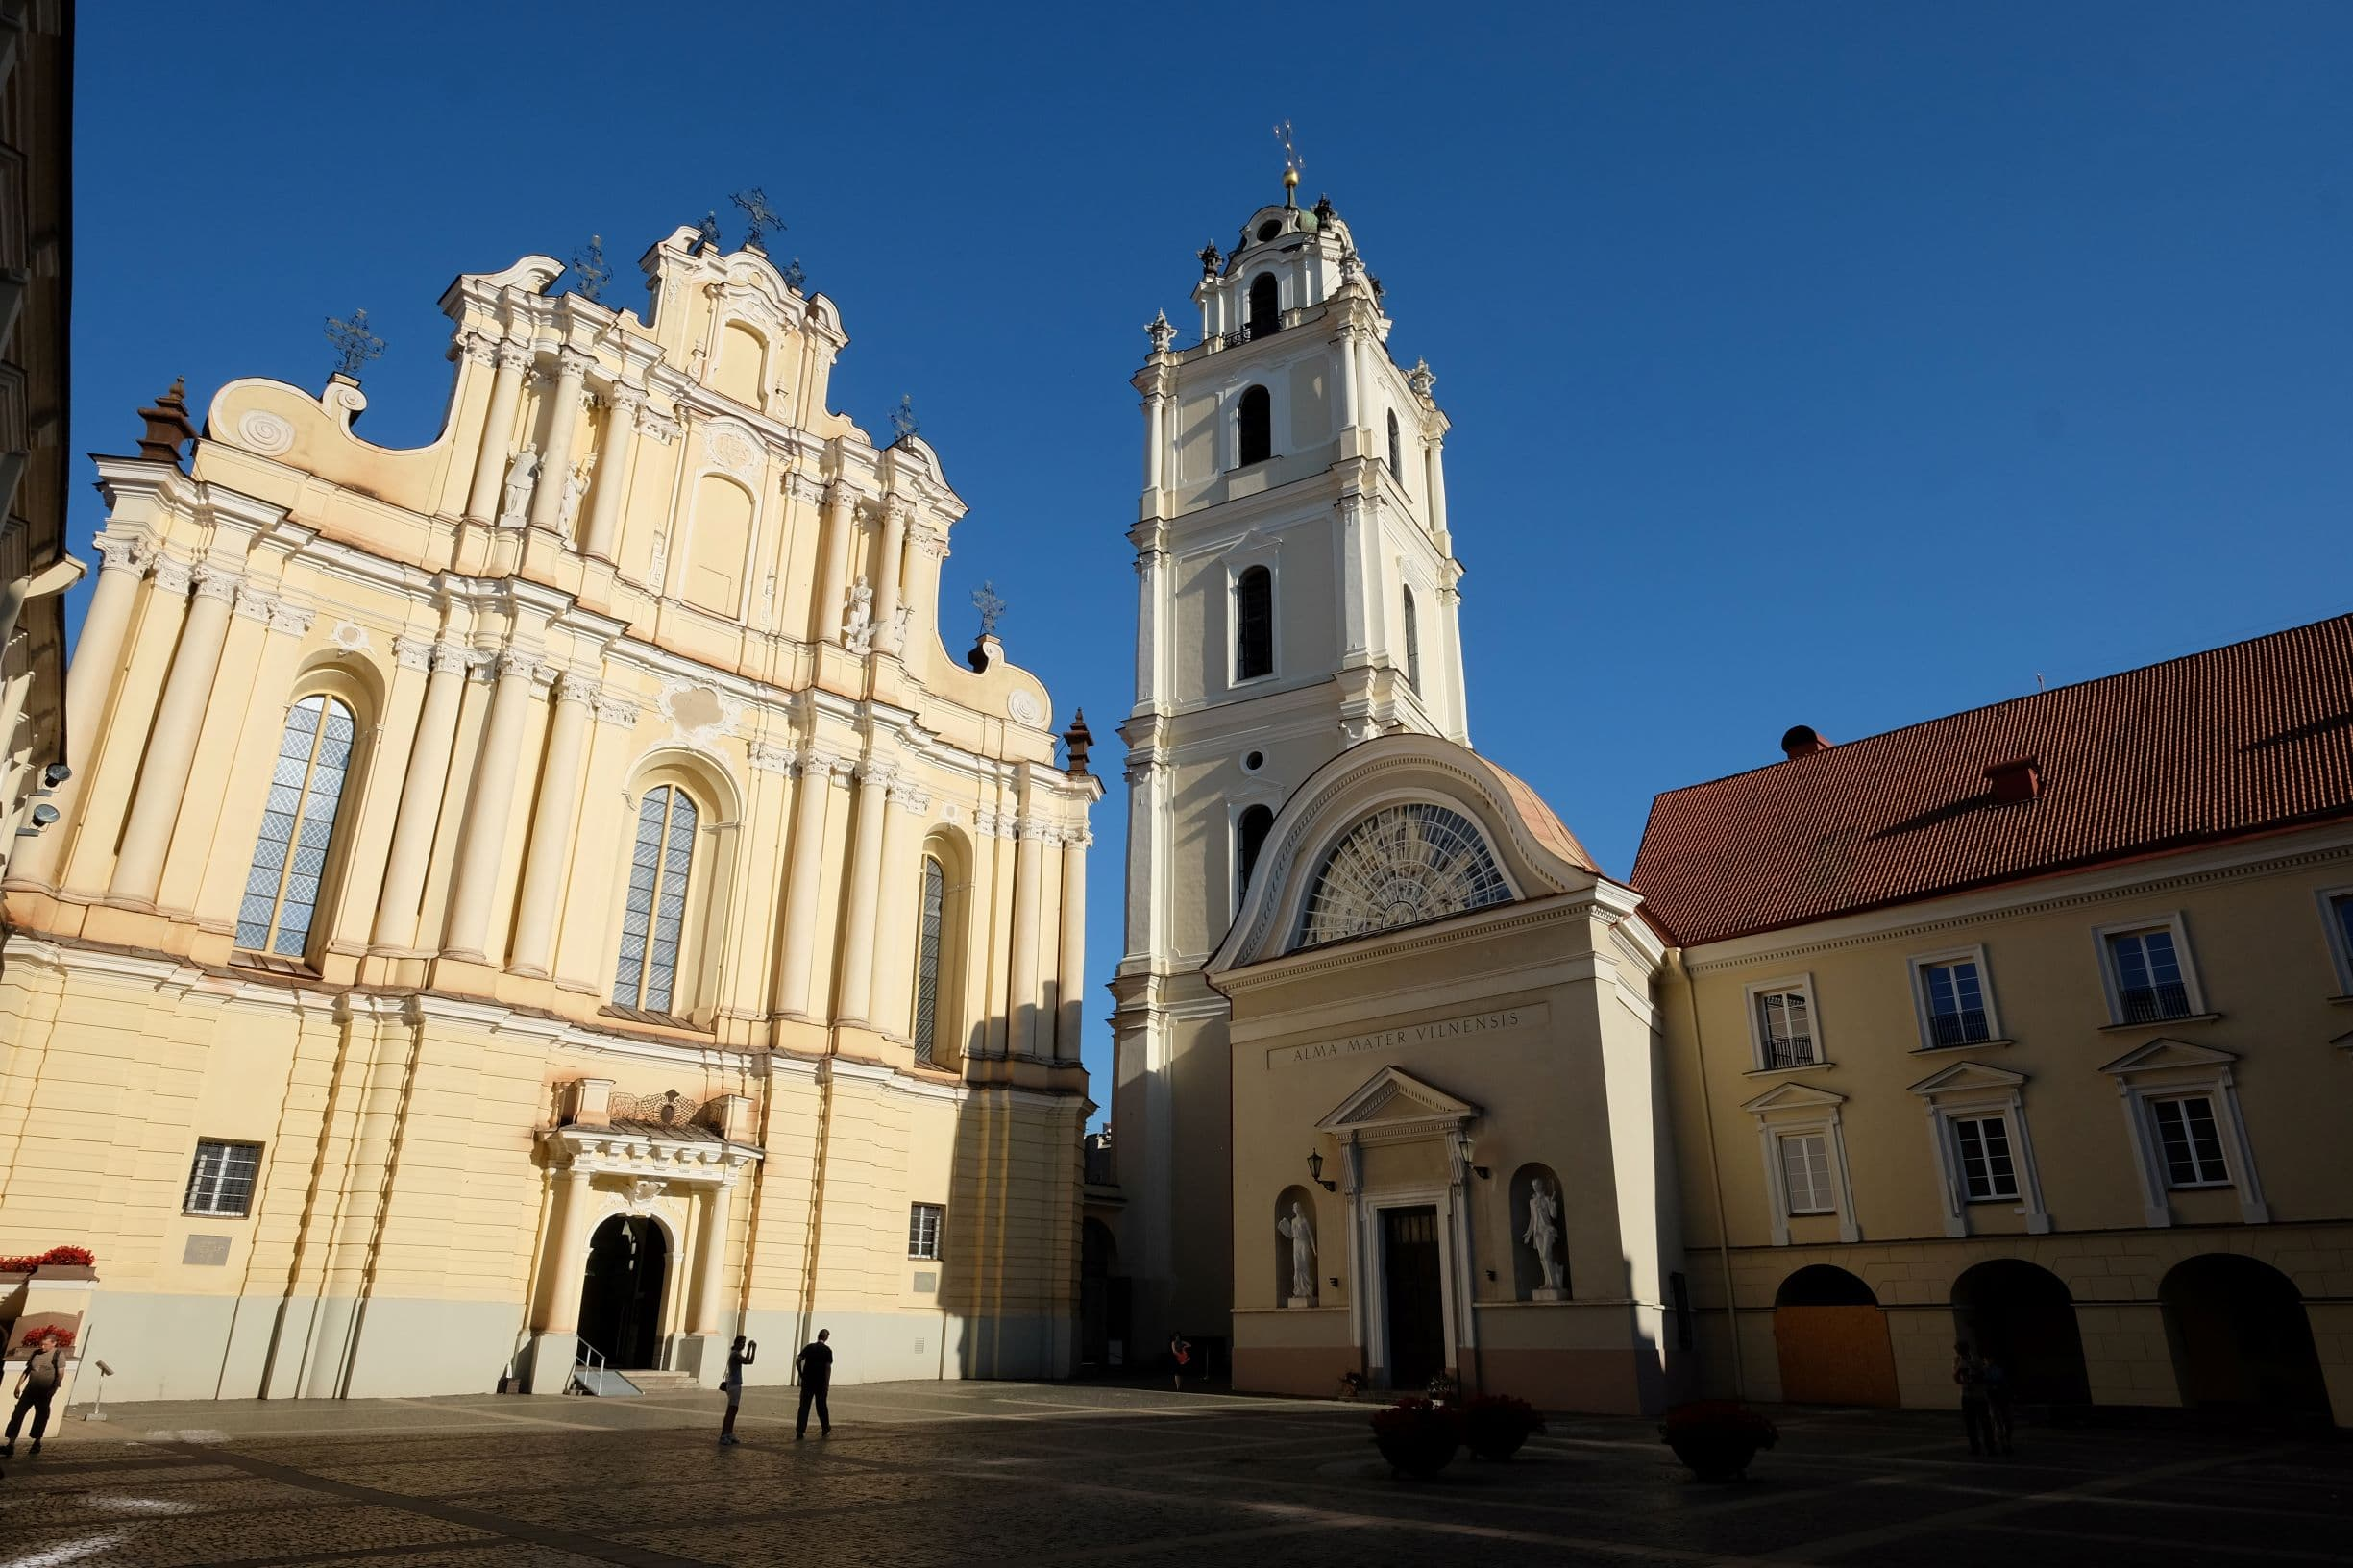 Sts. Johns' church belltower is great for a panoramic view of Vilnius Old Town